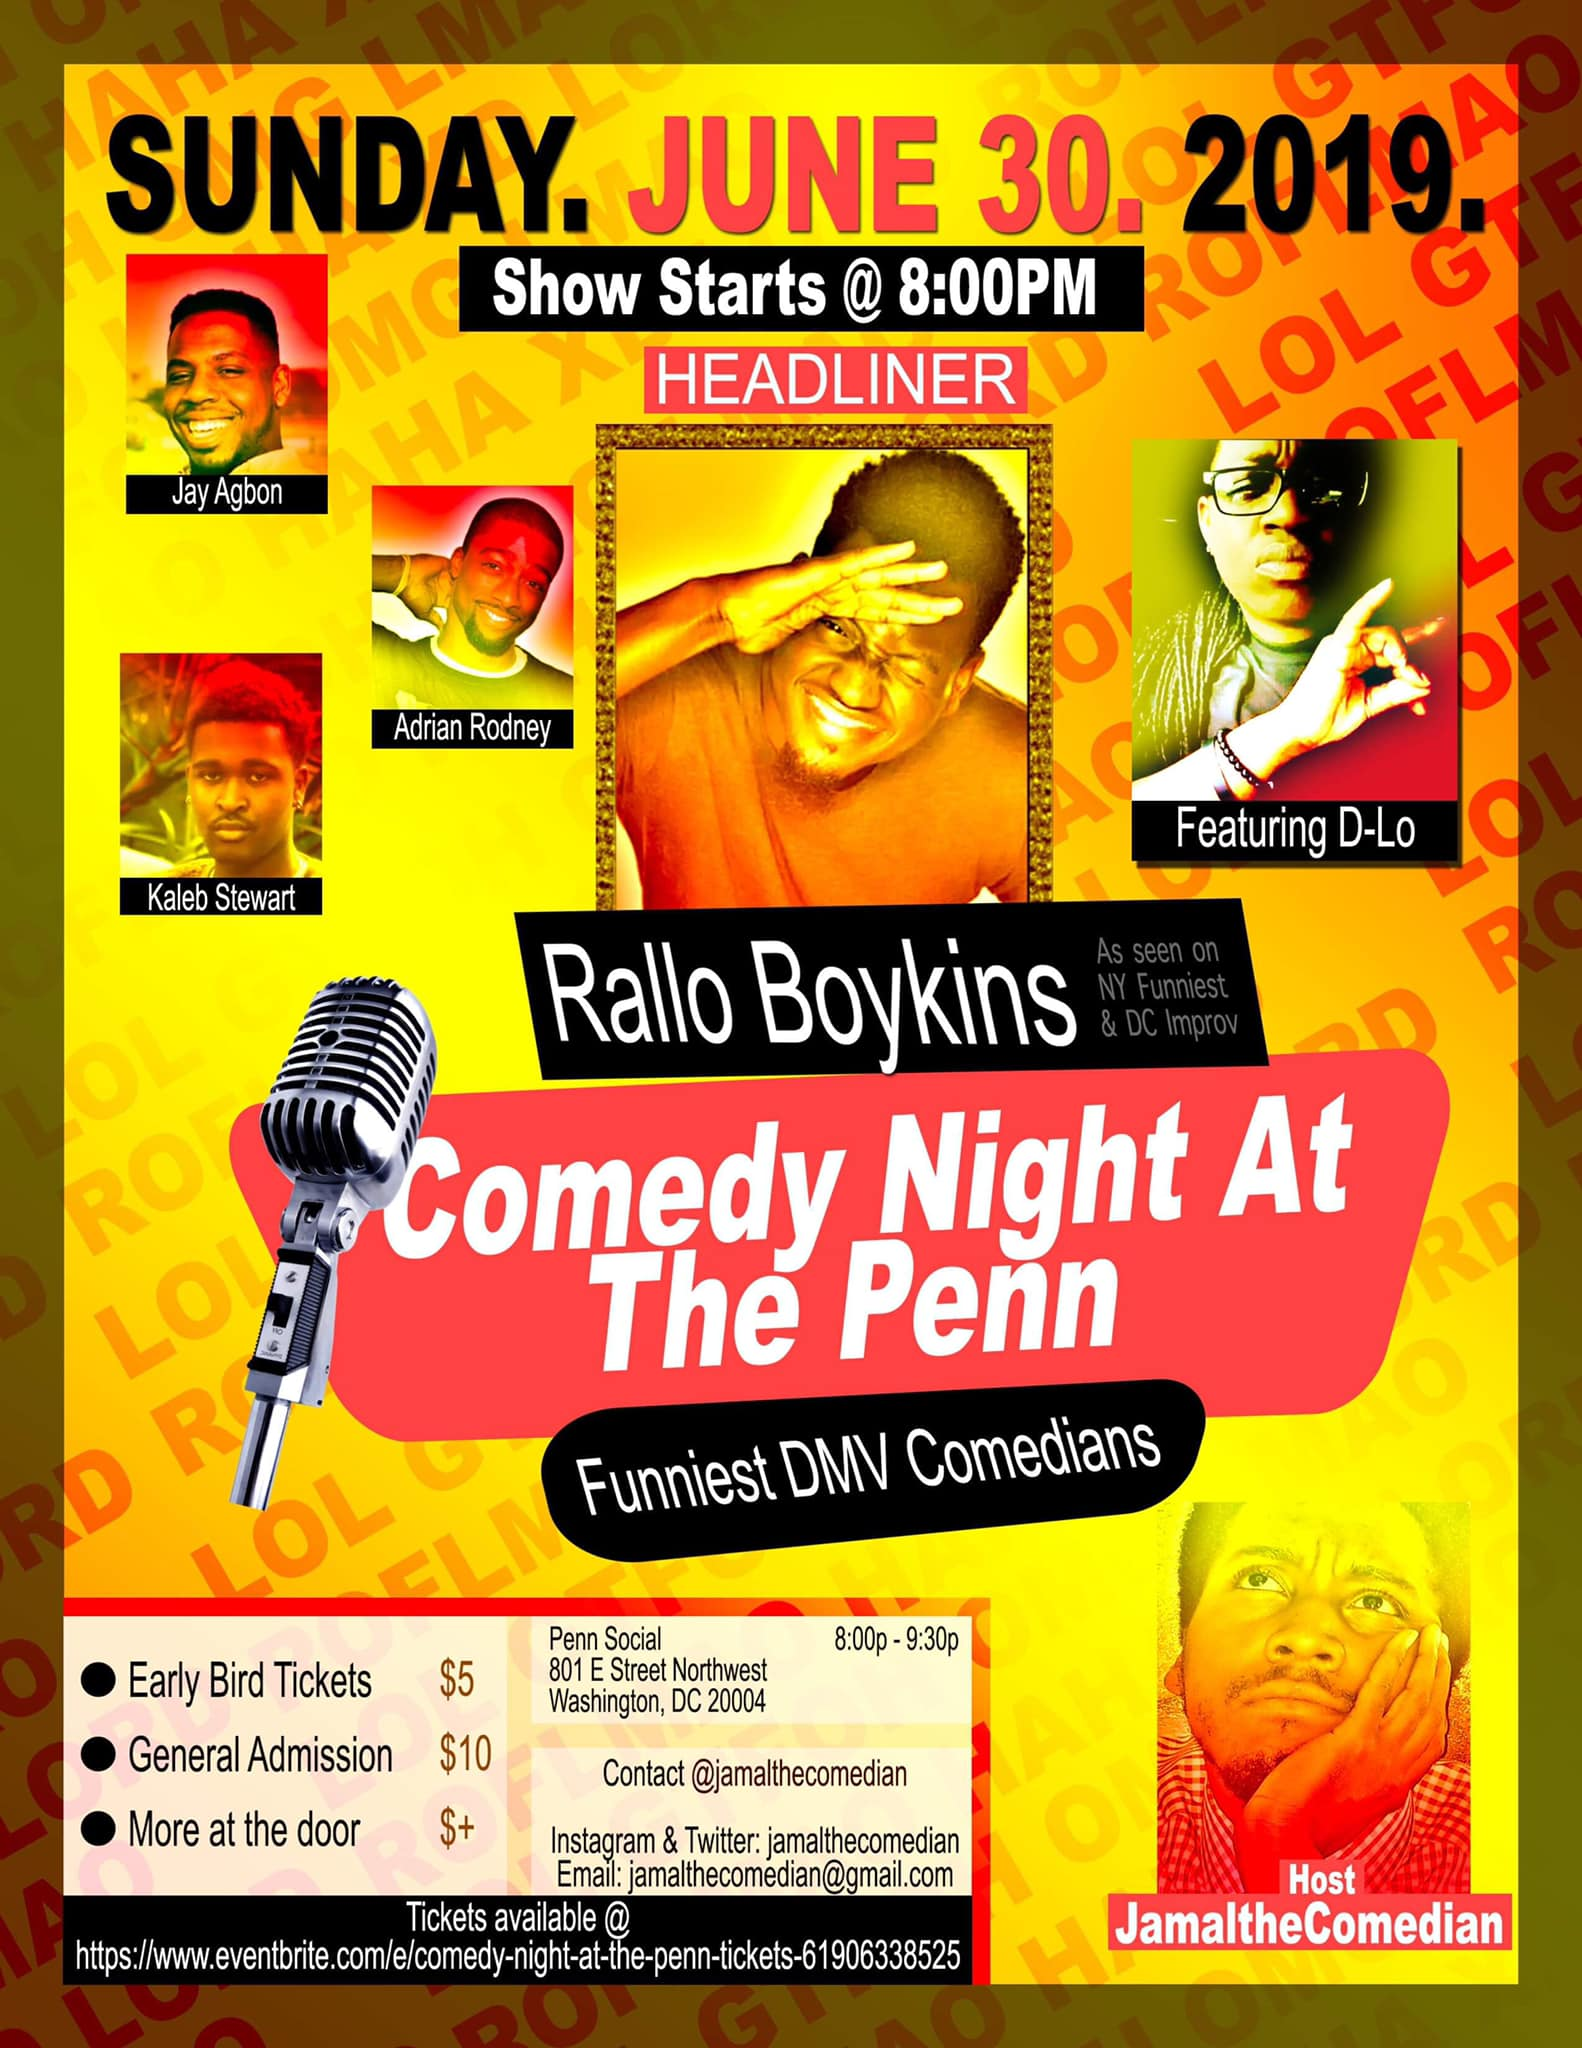 Comedy Night @ The Penn Sunday, June 30th 8:oopm-9:3opm Penn Social | 801 E St.  NW | Washington, DC 20004   Tickets